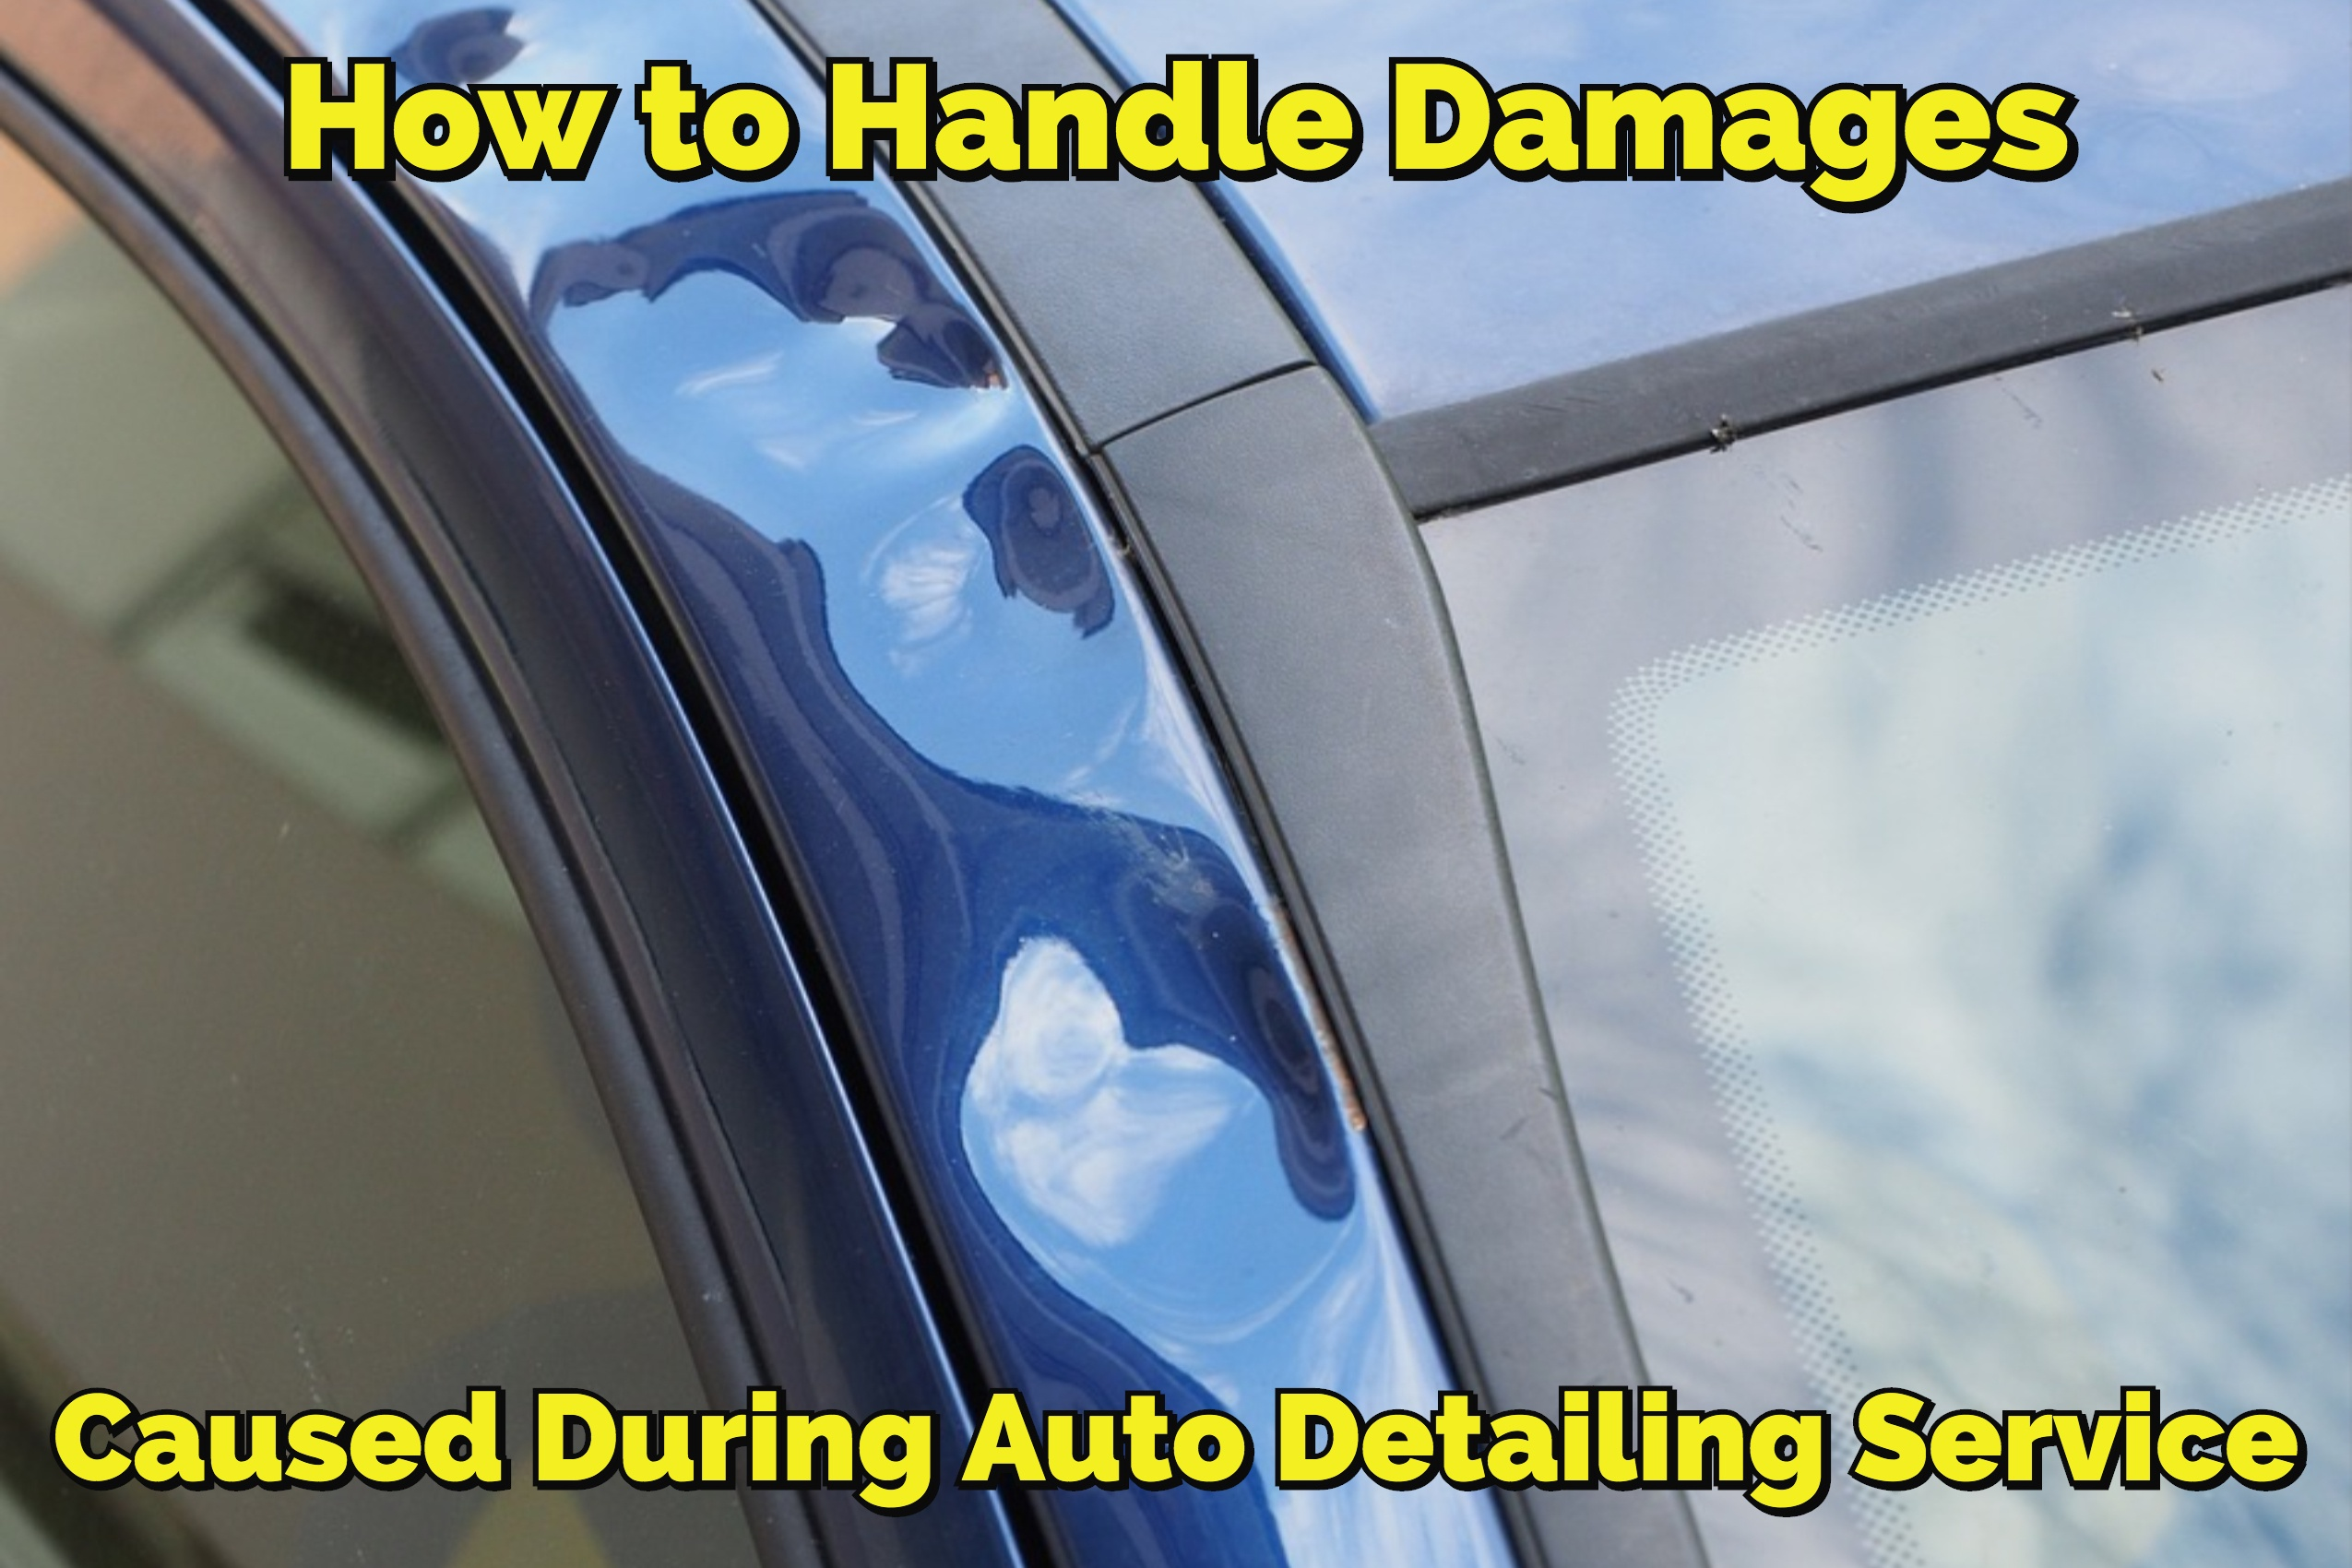 Handling Damage Caused During Auto Detailing Service